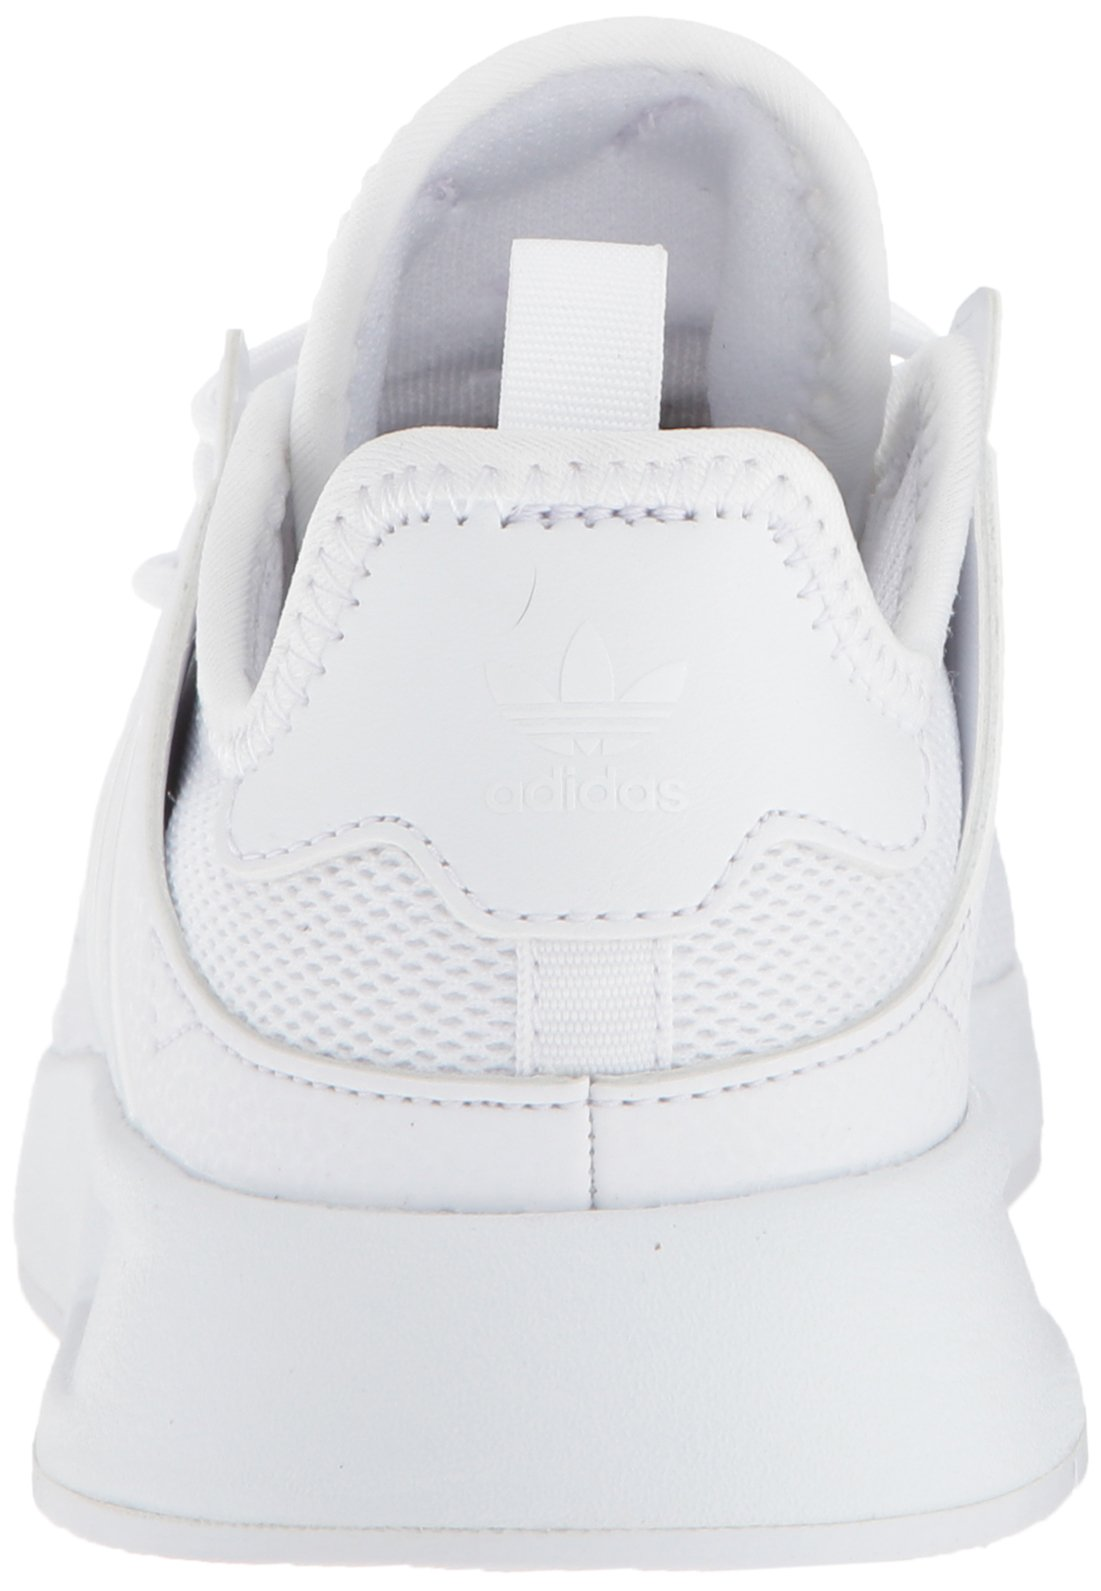 adidas Originals Boys' X_PLR C, White/White/White, 10.5 M US Little Kid by adidas Originals (Image #2)